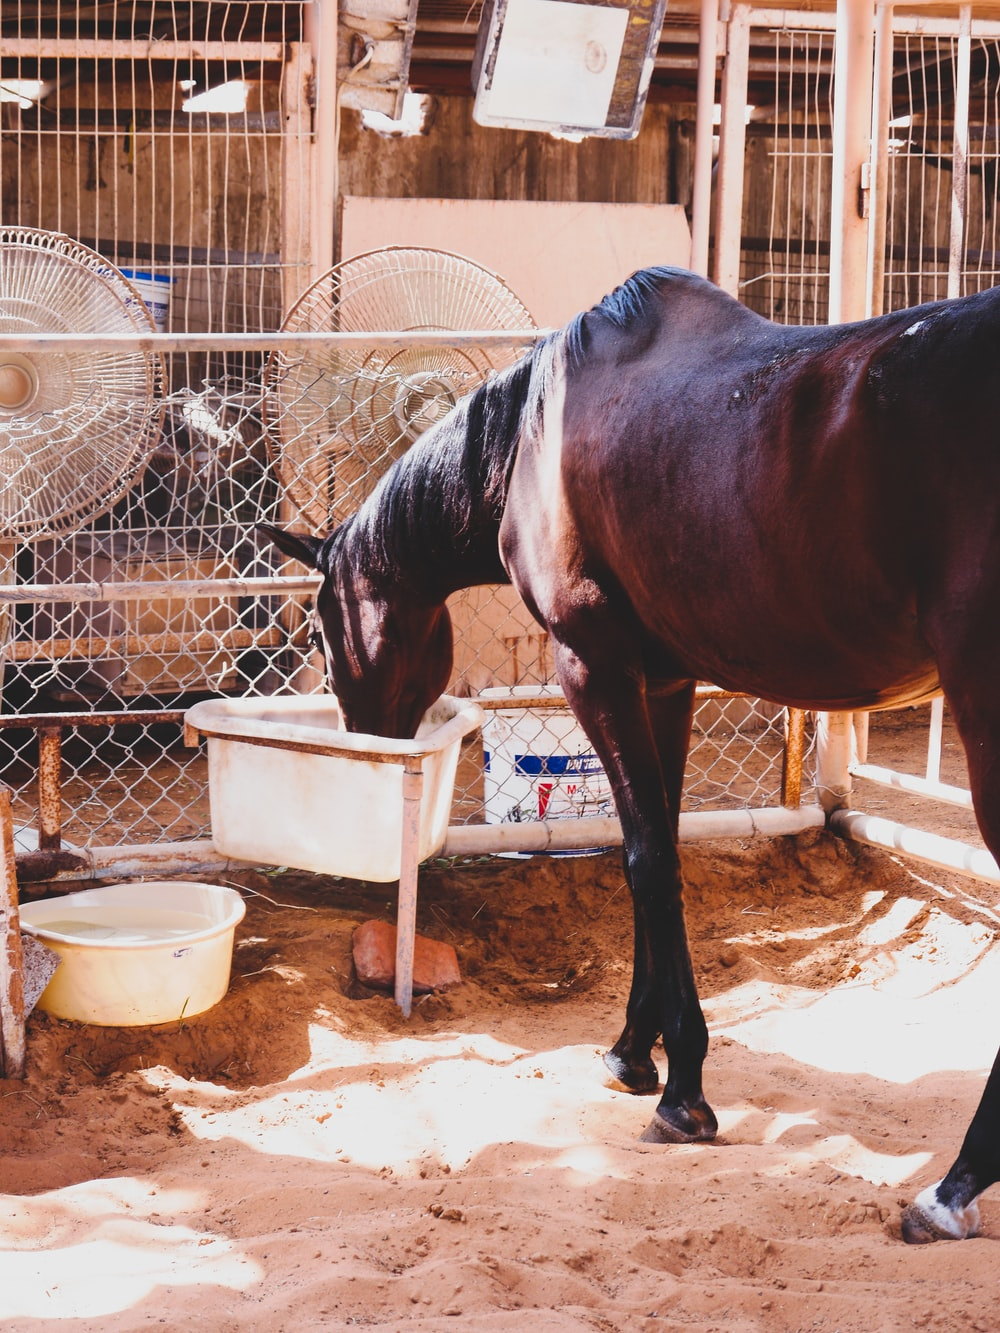 brown horse drinking water from white plastic container